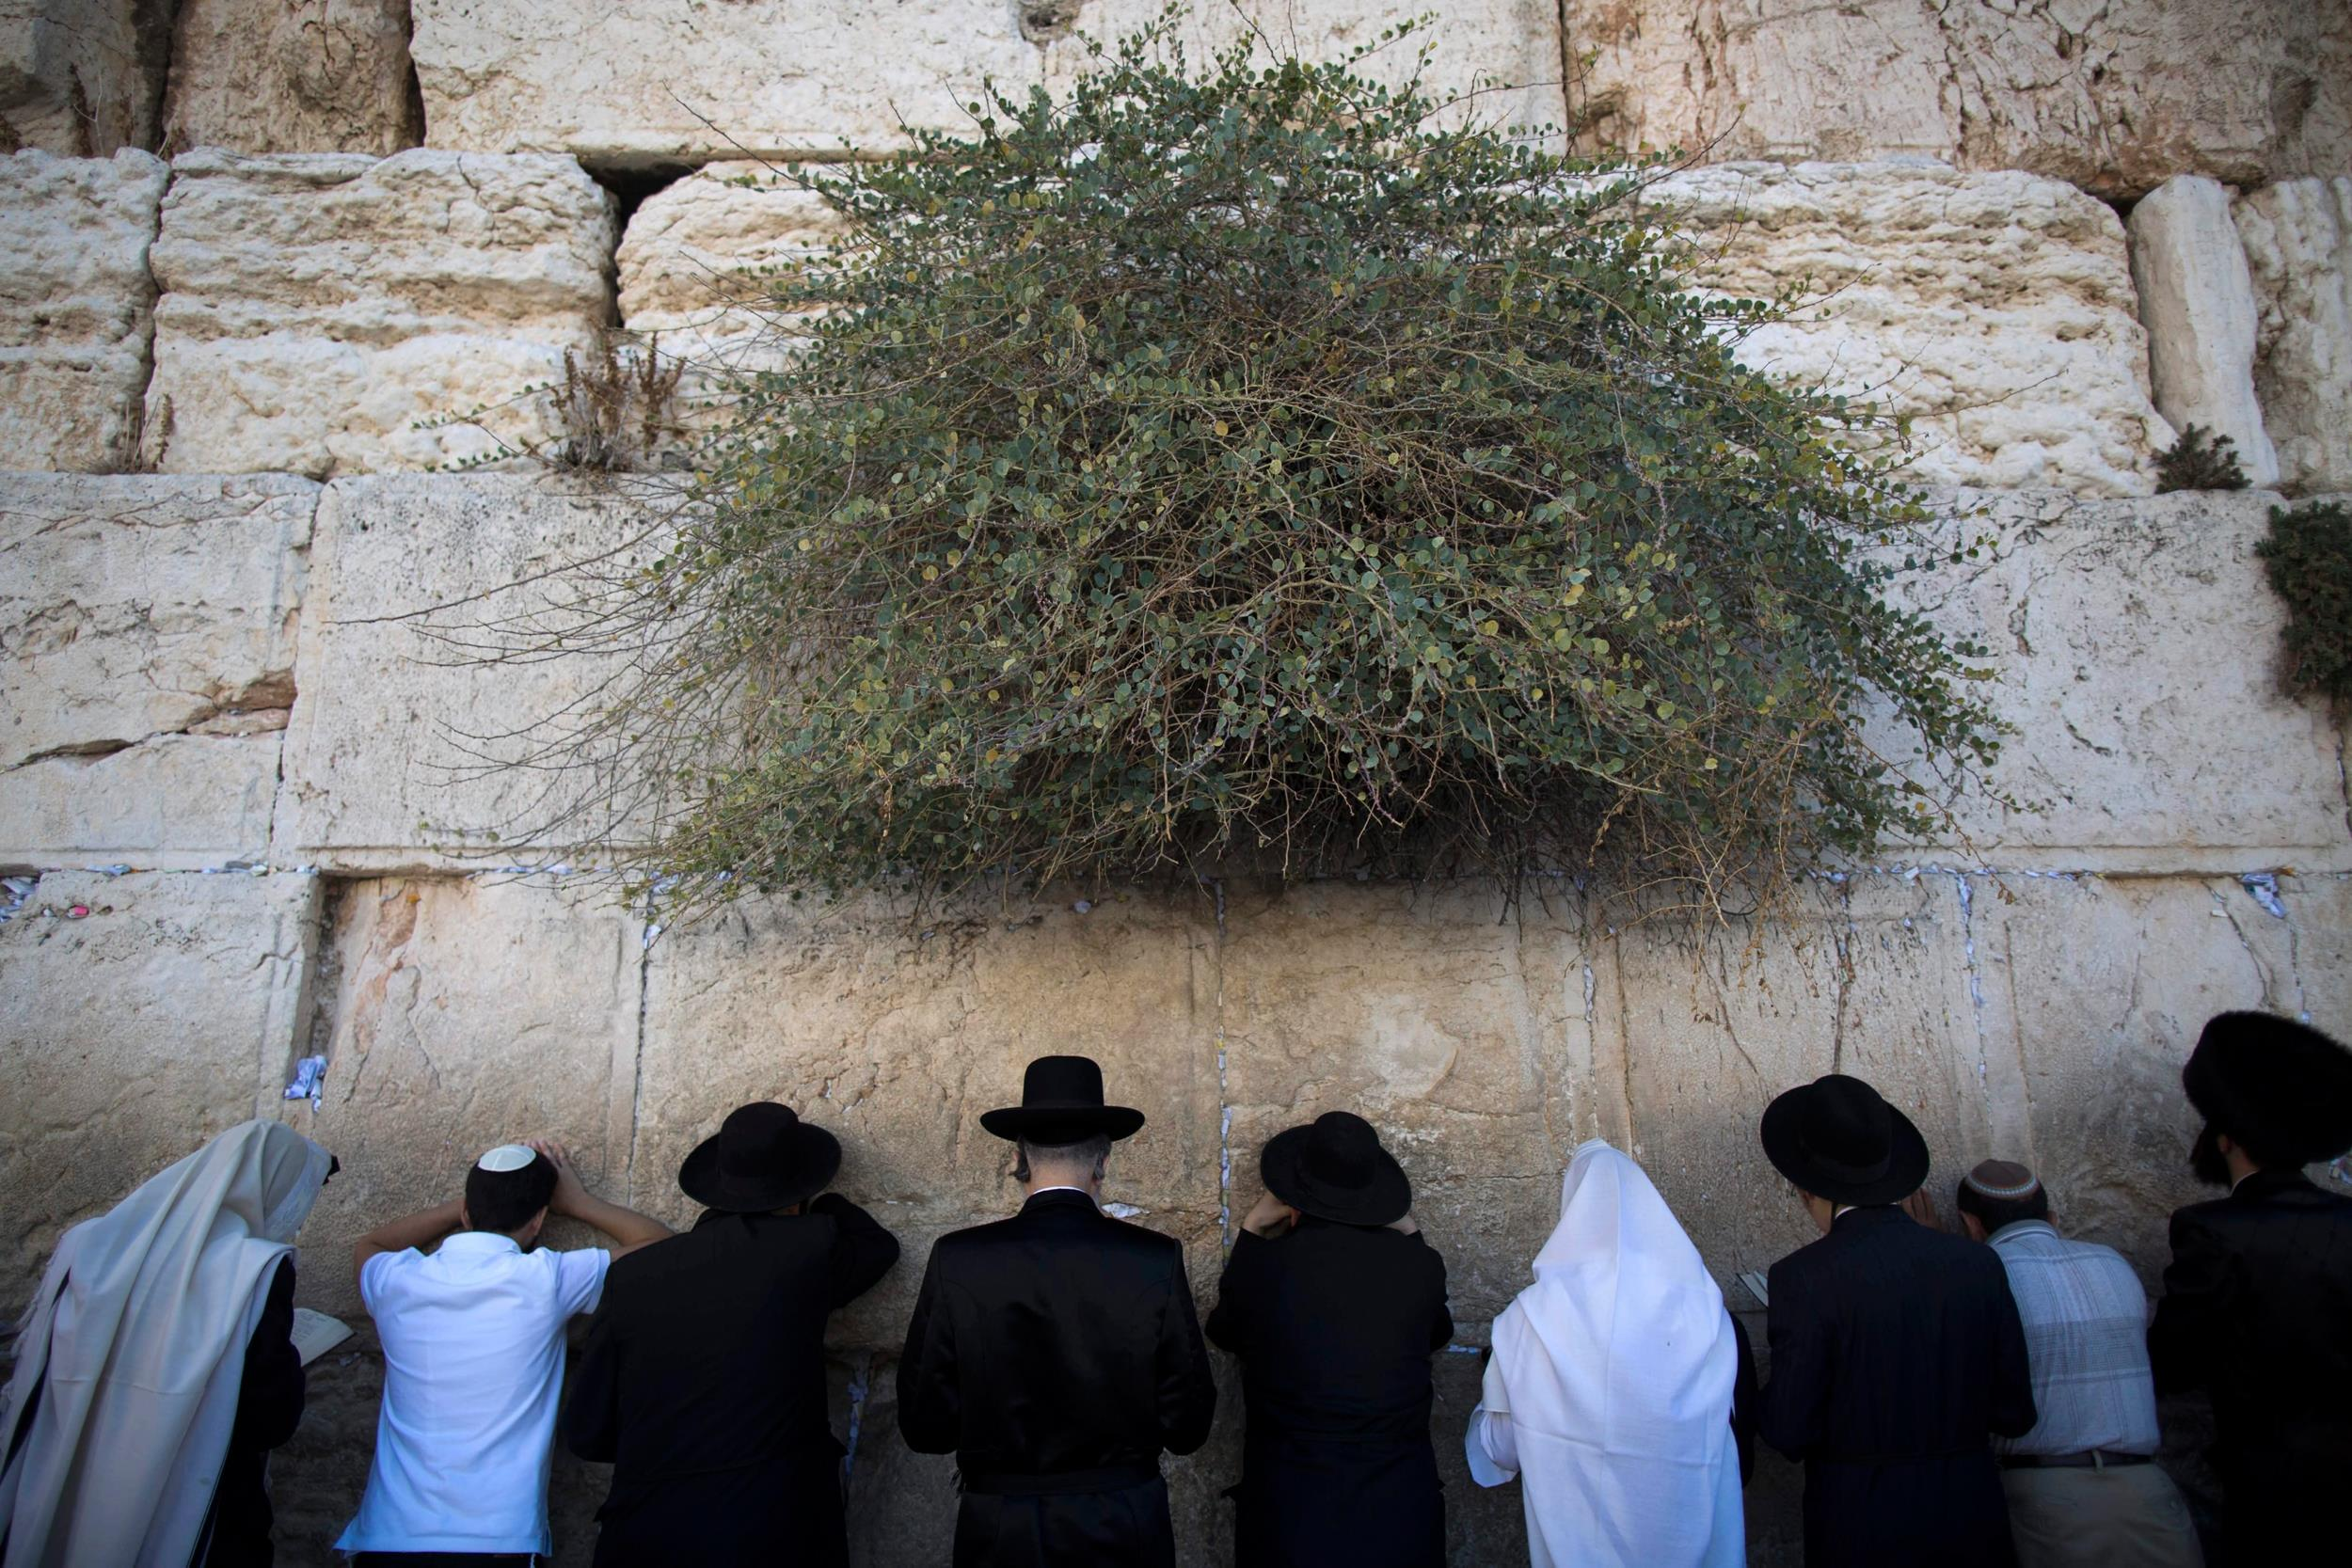 Yom Kippurthe Day of Atonementis considered the most important holiday in the Jewish faith Falling in the month of Tishrei September or October in the